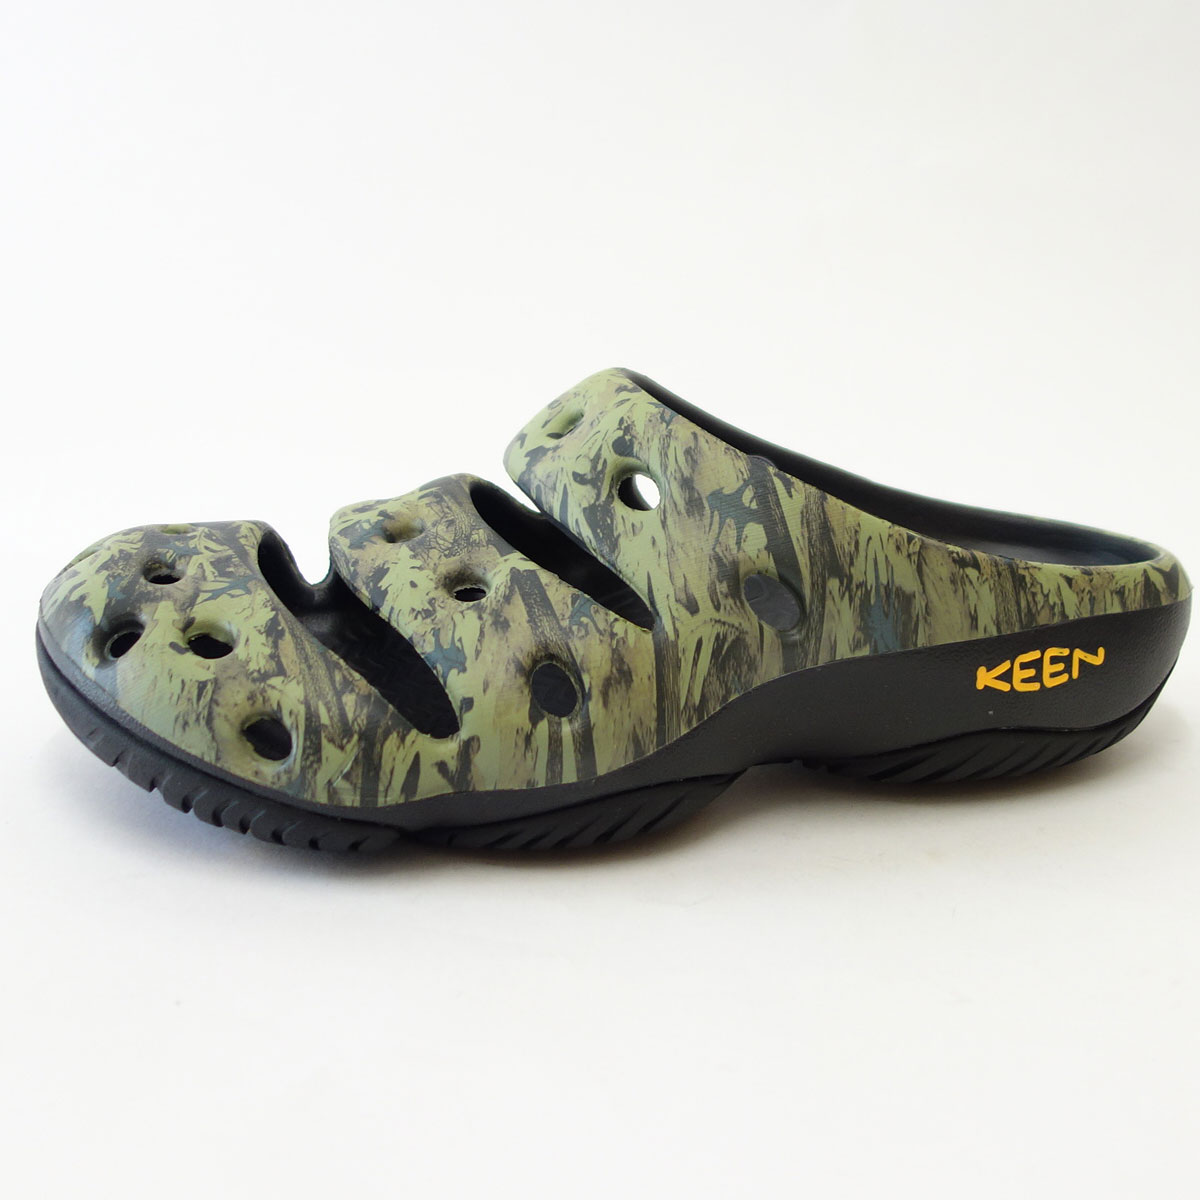 Yogui Arts 1002034 (men's) keen's own weight and relaxcrogg colors:Camo Green shoes shoes shoes